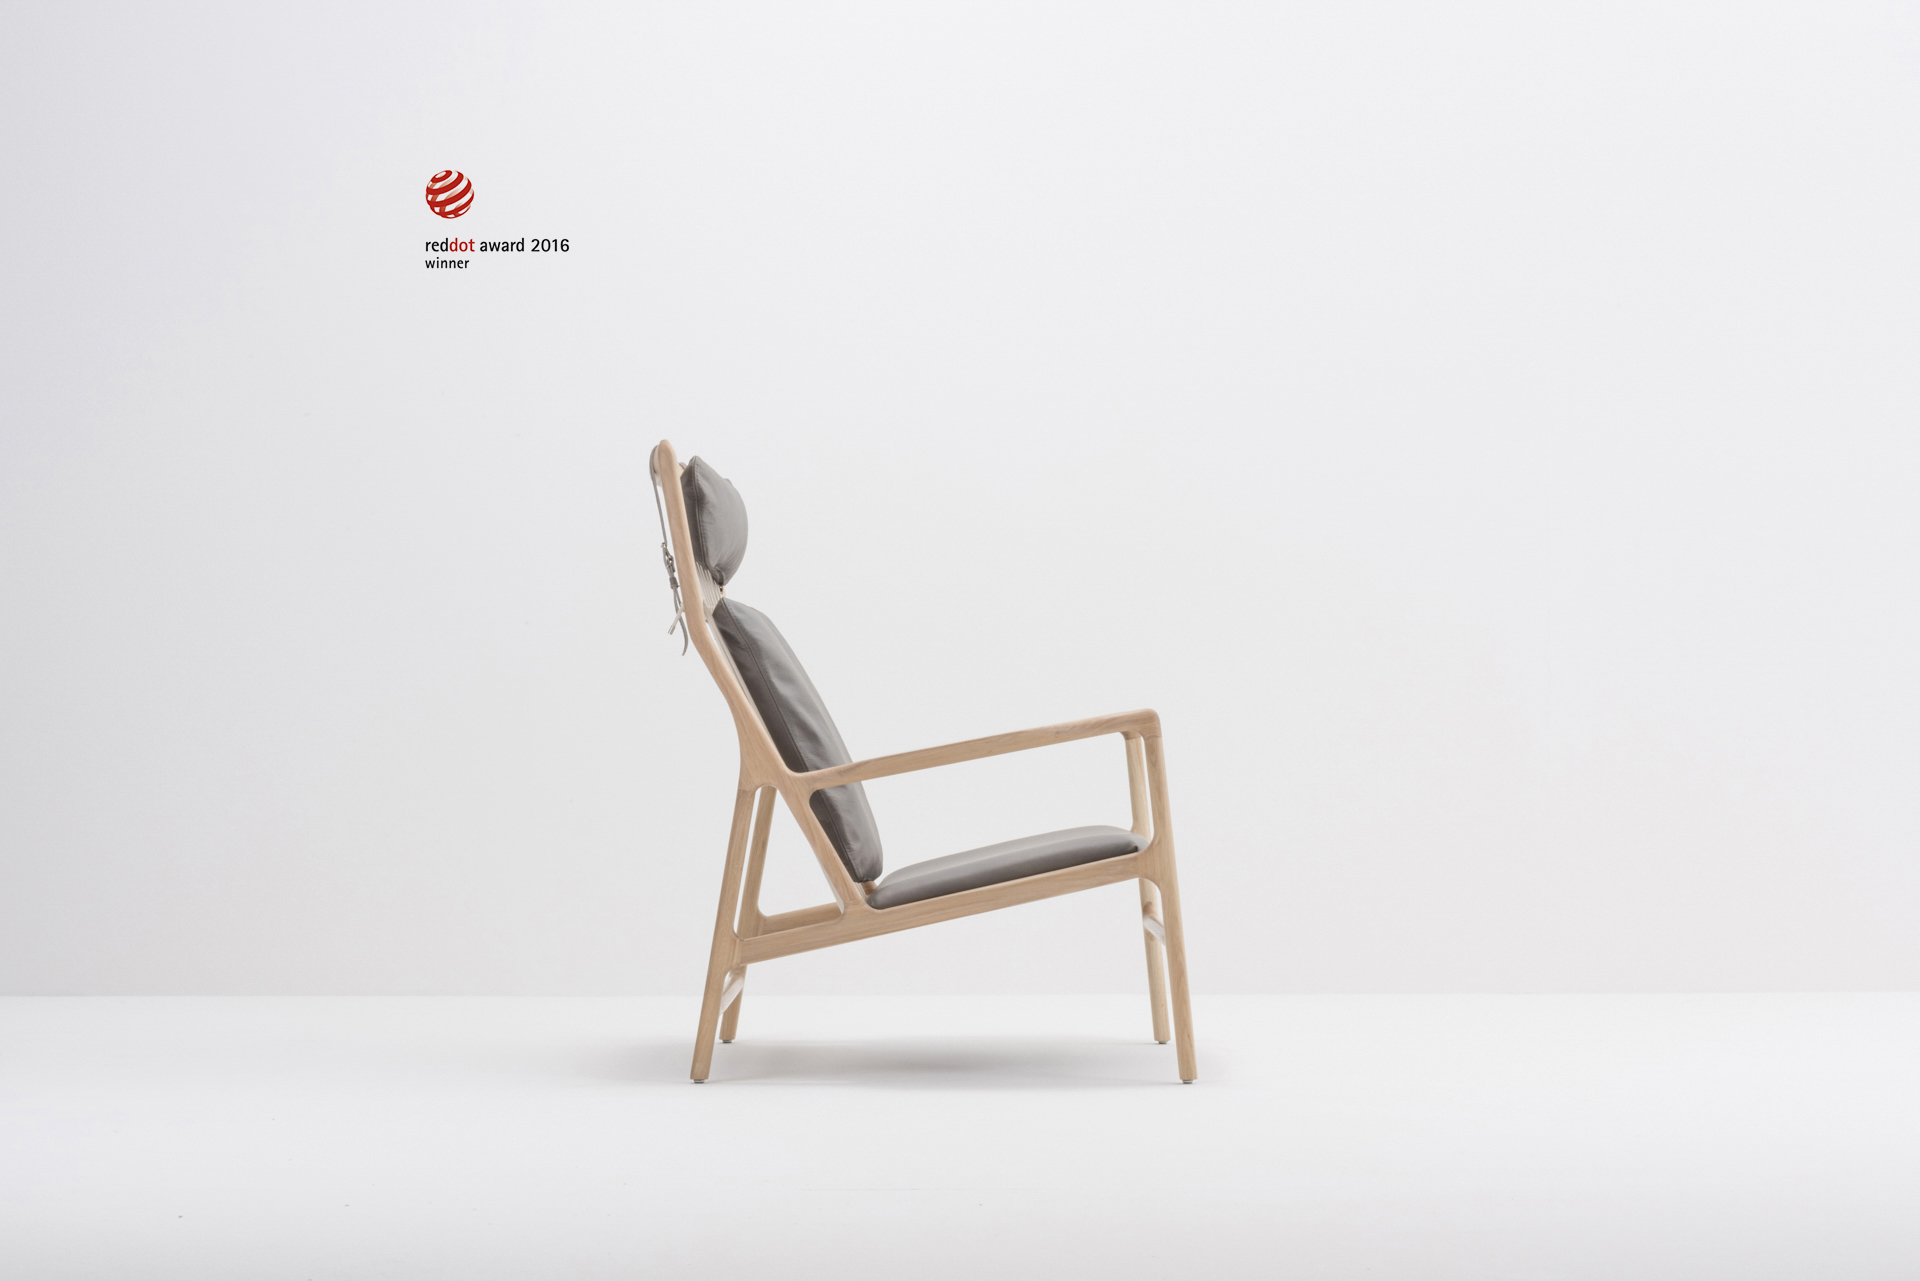 Dedo lounge chair - Red Dot Award 2016